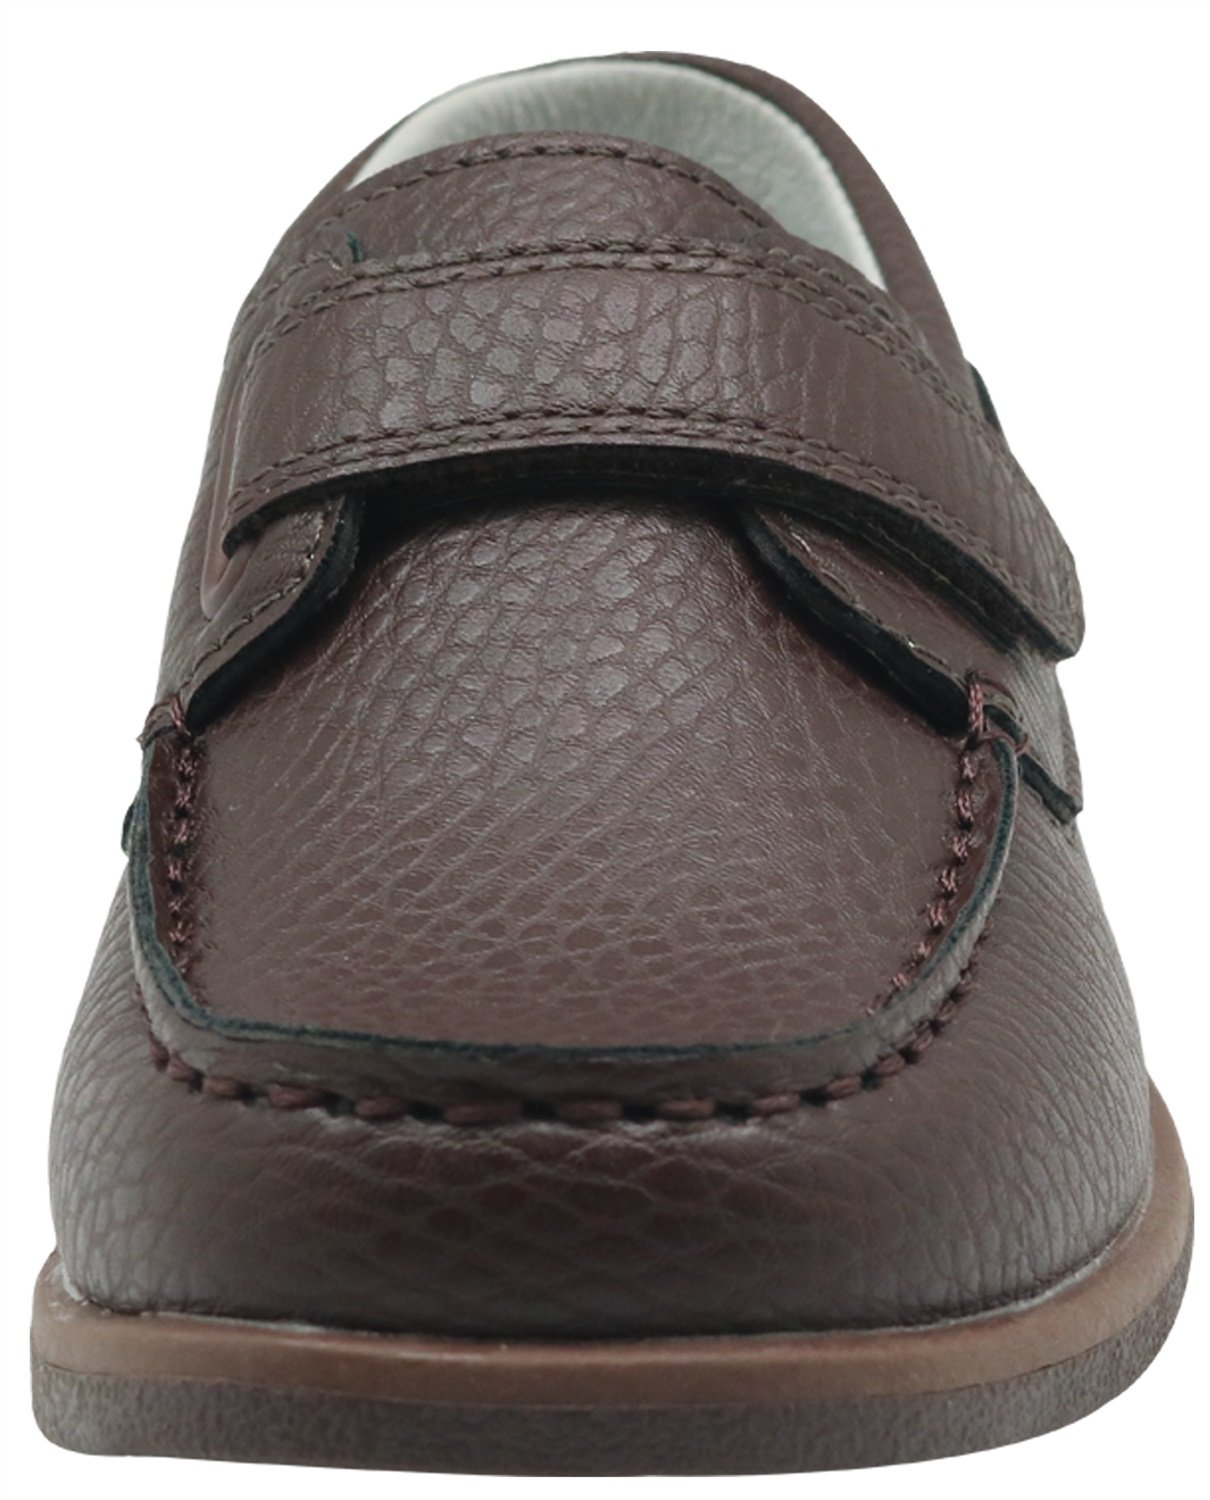 Toddler//Little Kid Hawkwell Kids Boys Loafers Casual Boat Shoes